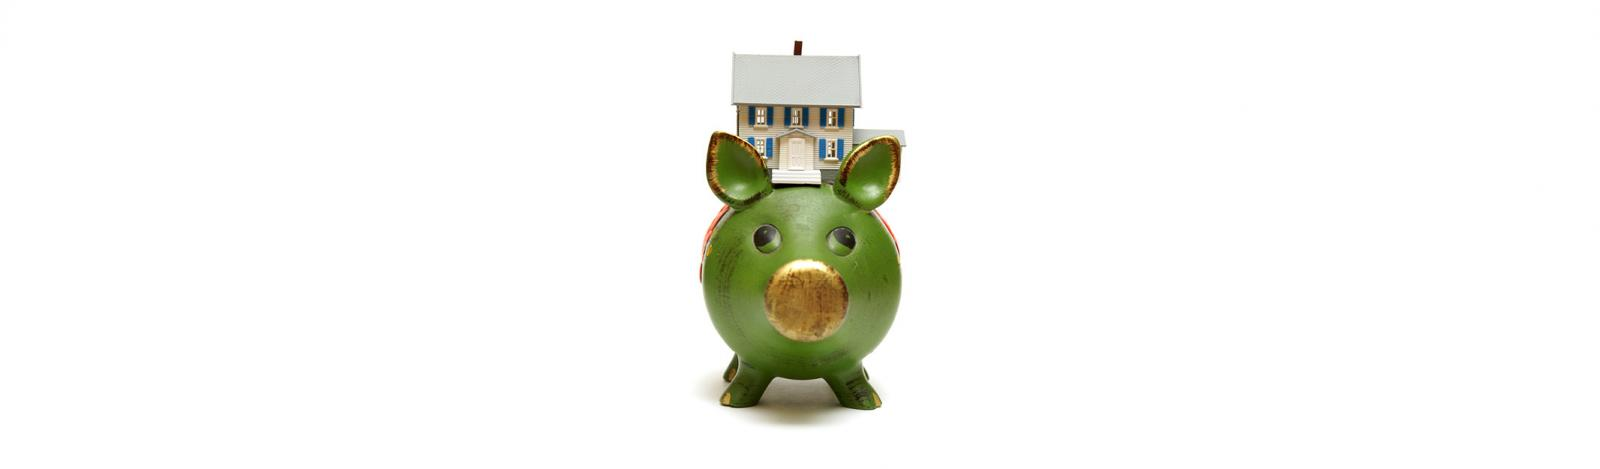 house sitting on top of a piggy bank